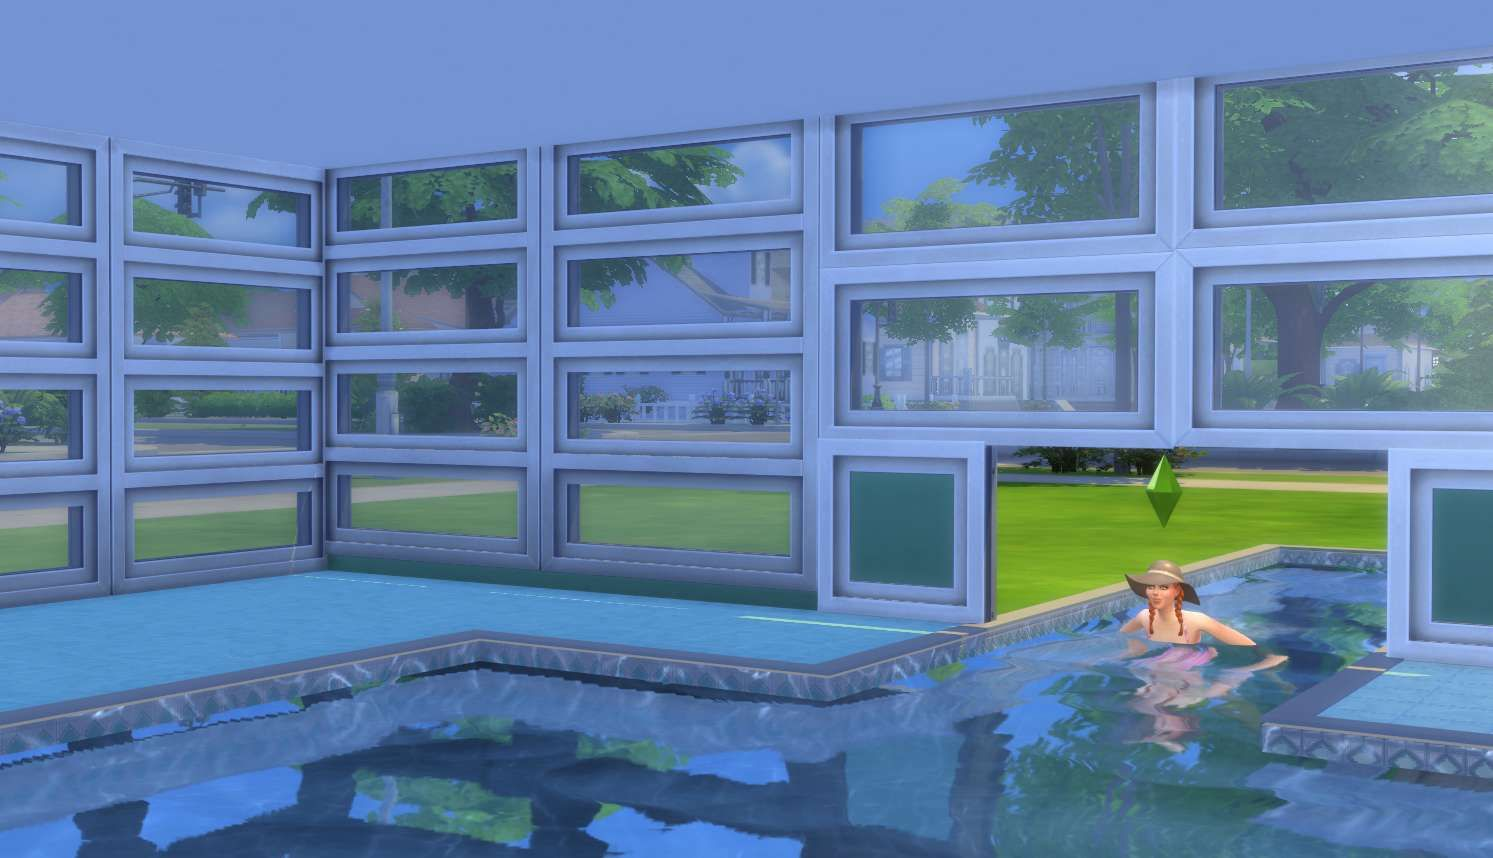 Sims 4 building how to 39 s sims can then swim under the for Pool designs sims 4